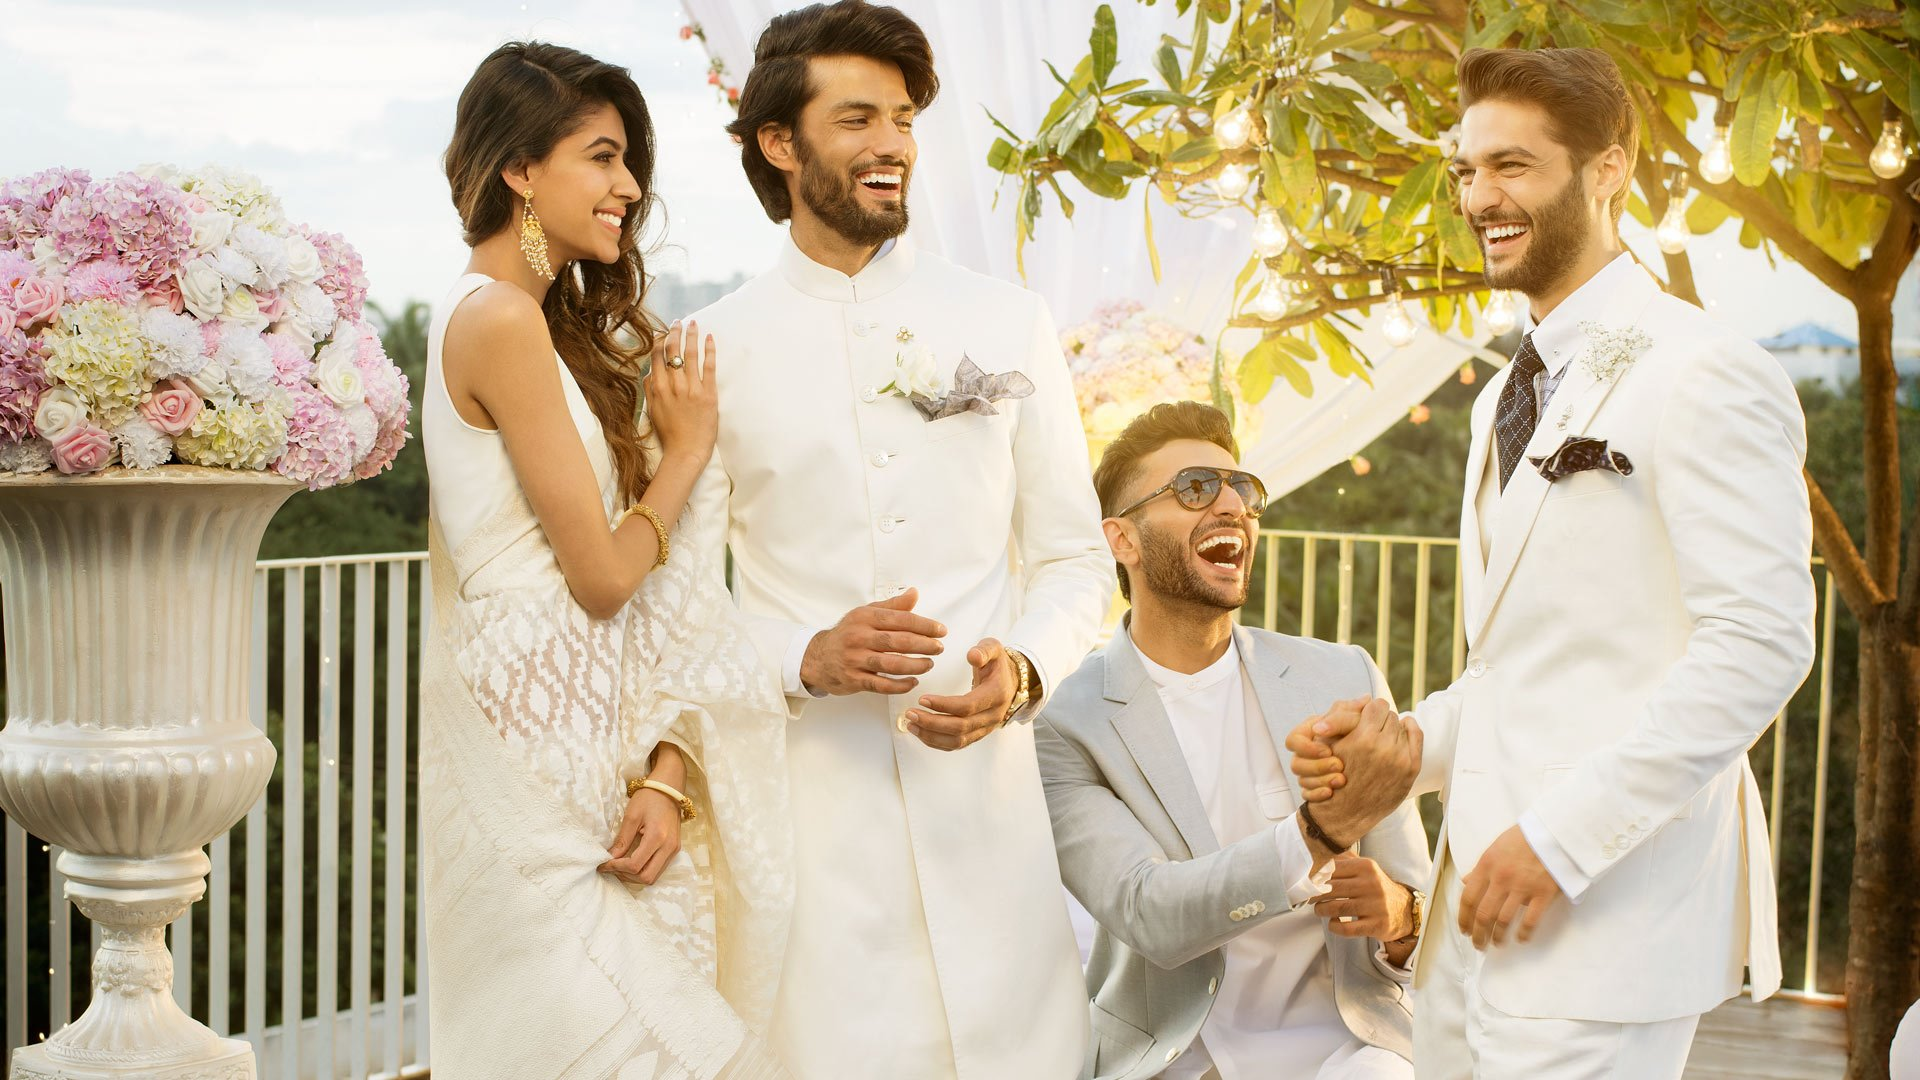 To look your best at a wedding, you need a style that meets your personality. Know how to make the right sync in the link below! #StayTrueStayNew #TheArvindStore #FashionForMen #WeddingSeason #WeddingCollection #BestMan #Ceremonial GQ India